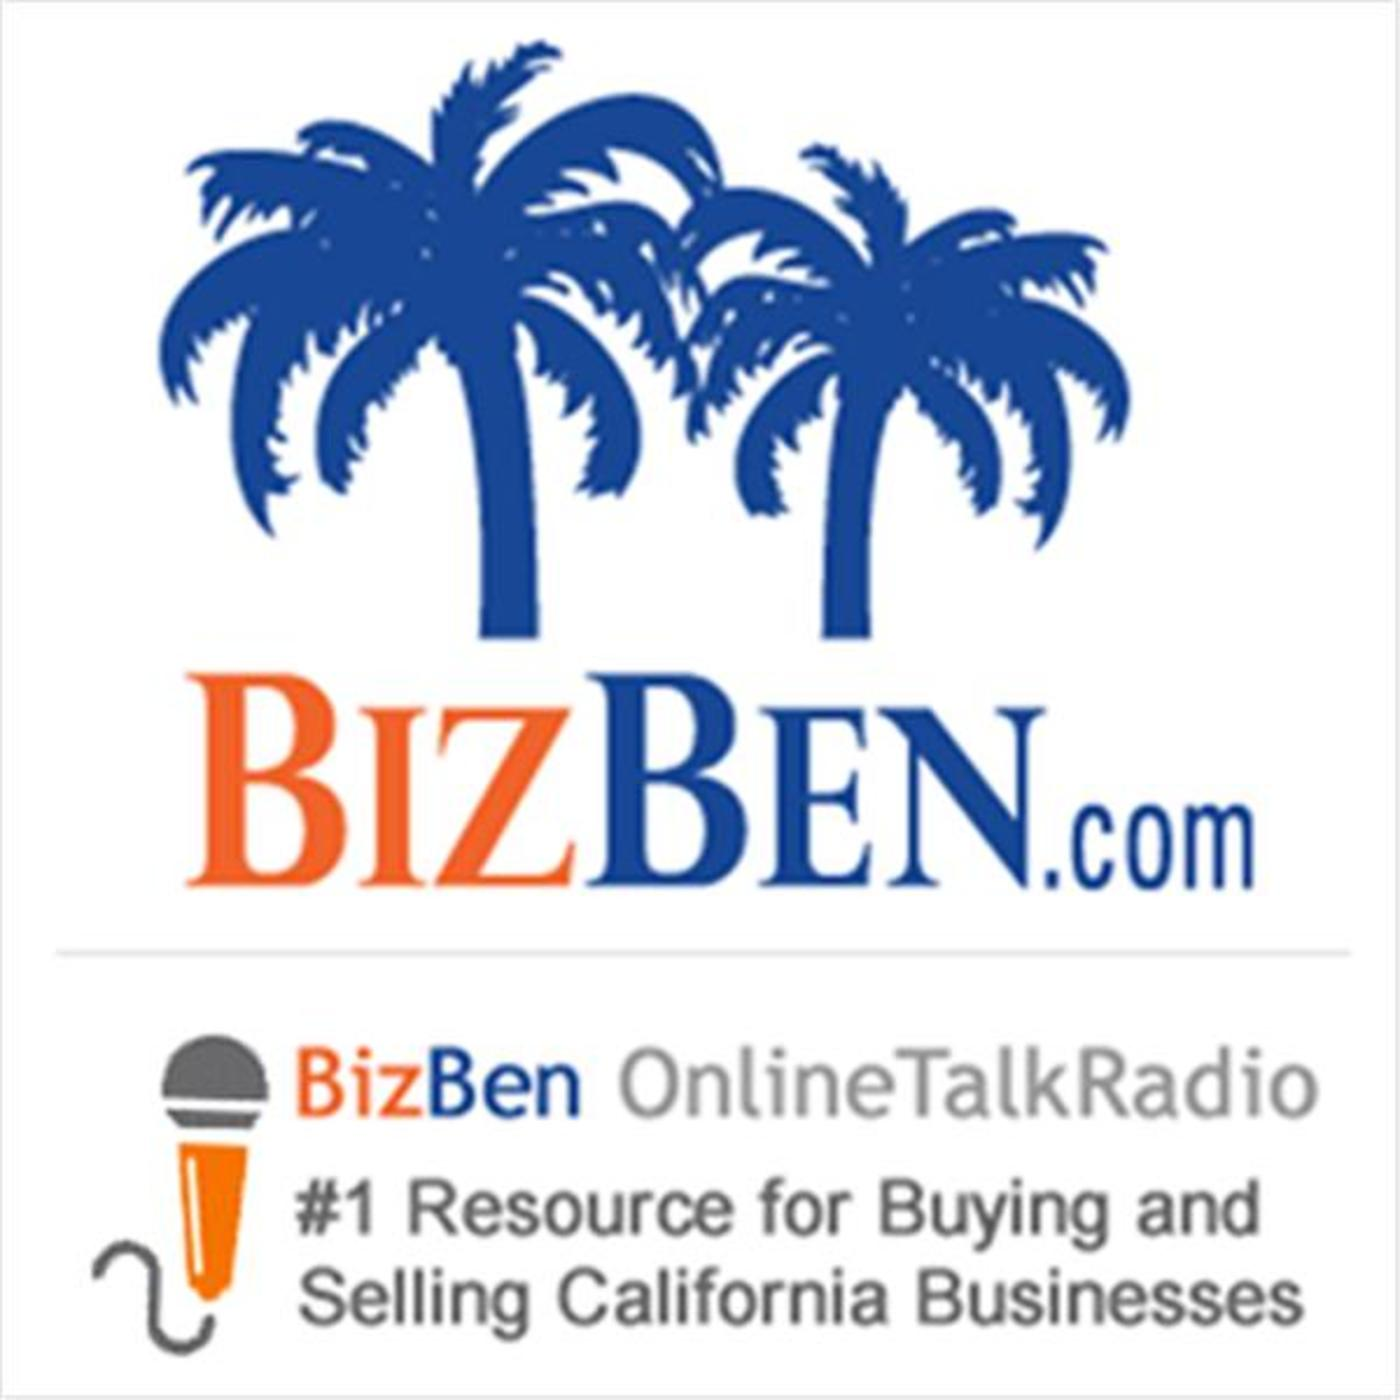 BizBen TalkRadio